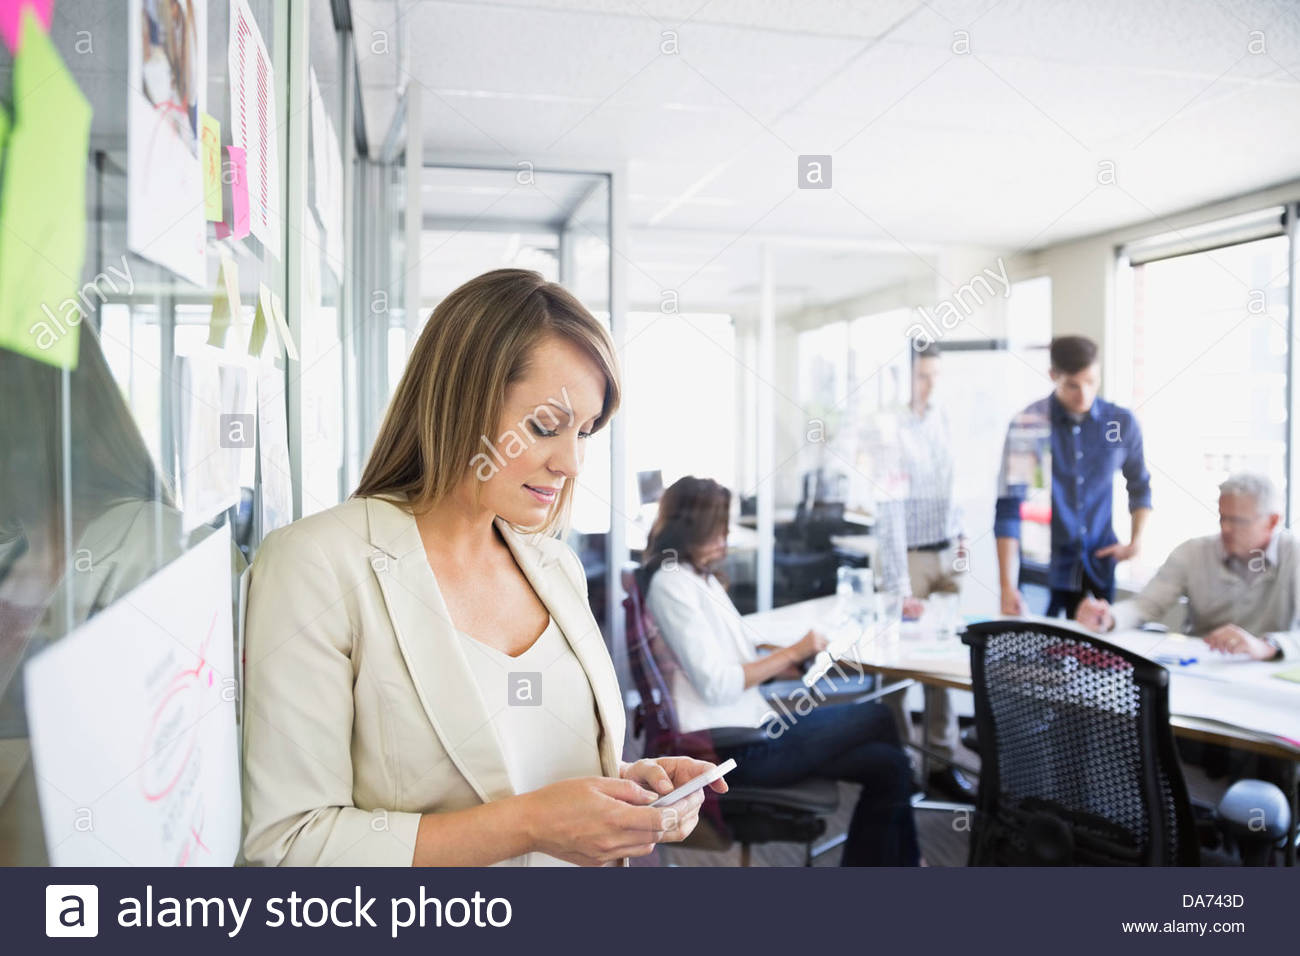 Businesswoman text messaging on mobile phone in office Banque D'Images